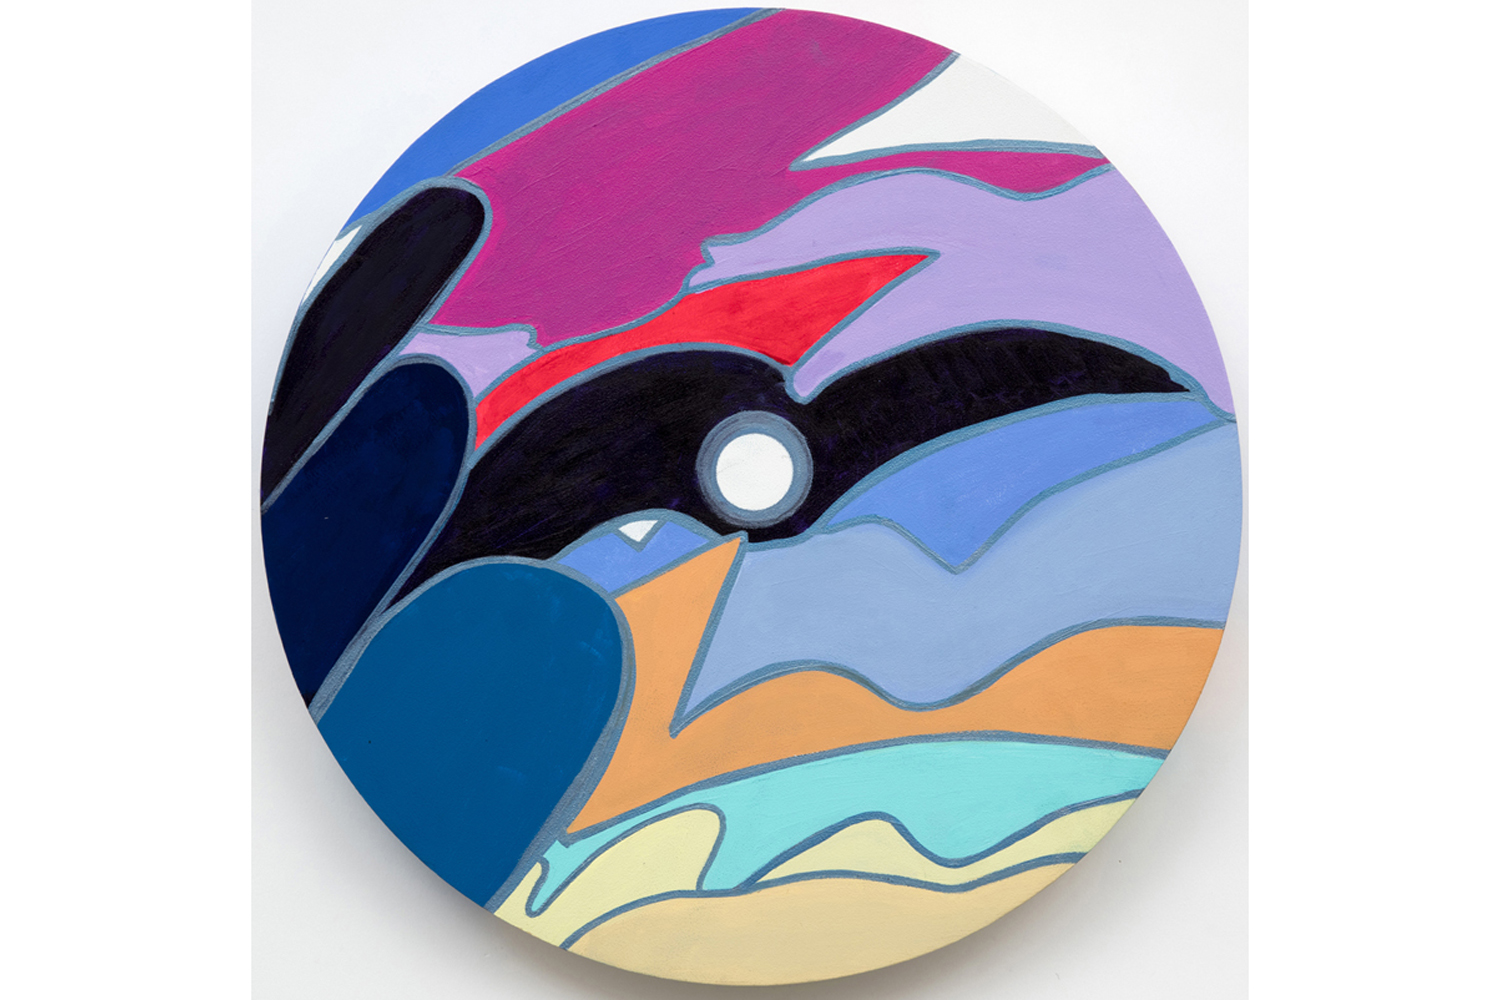 David Gaither  The Colourwheel/Colourdisc Series: Construct #9,  2017 Acrylic, gouache, composite and solid paint markers on panel 16 inch diameter (40.6 cm diameter)